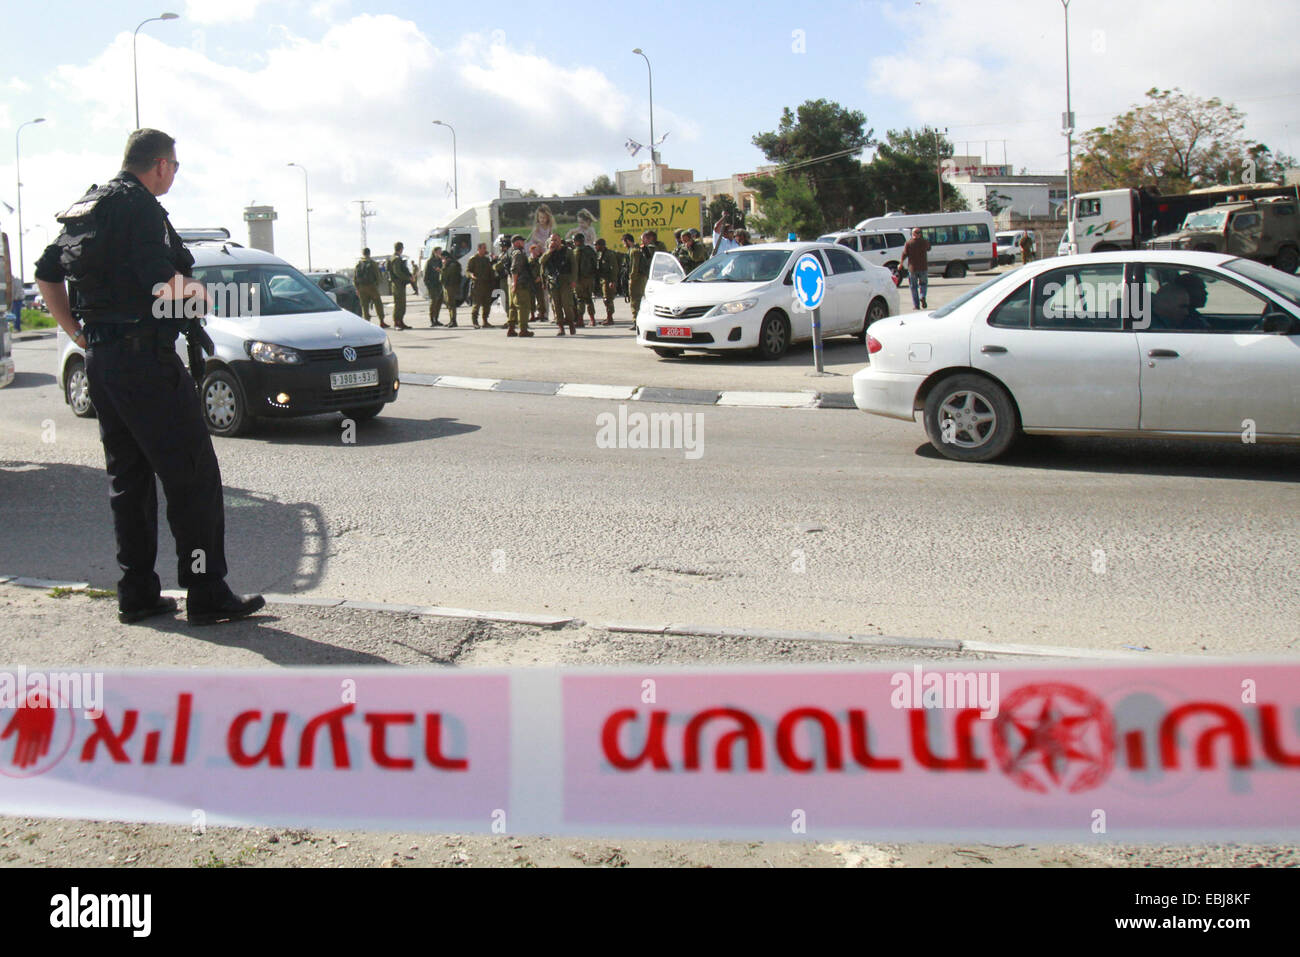 Israeli police carry out forensic work at the site of an alleged stabbing attack by a Palestinian woman on an Israeli - Stock Image